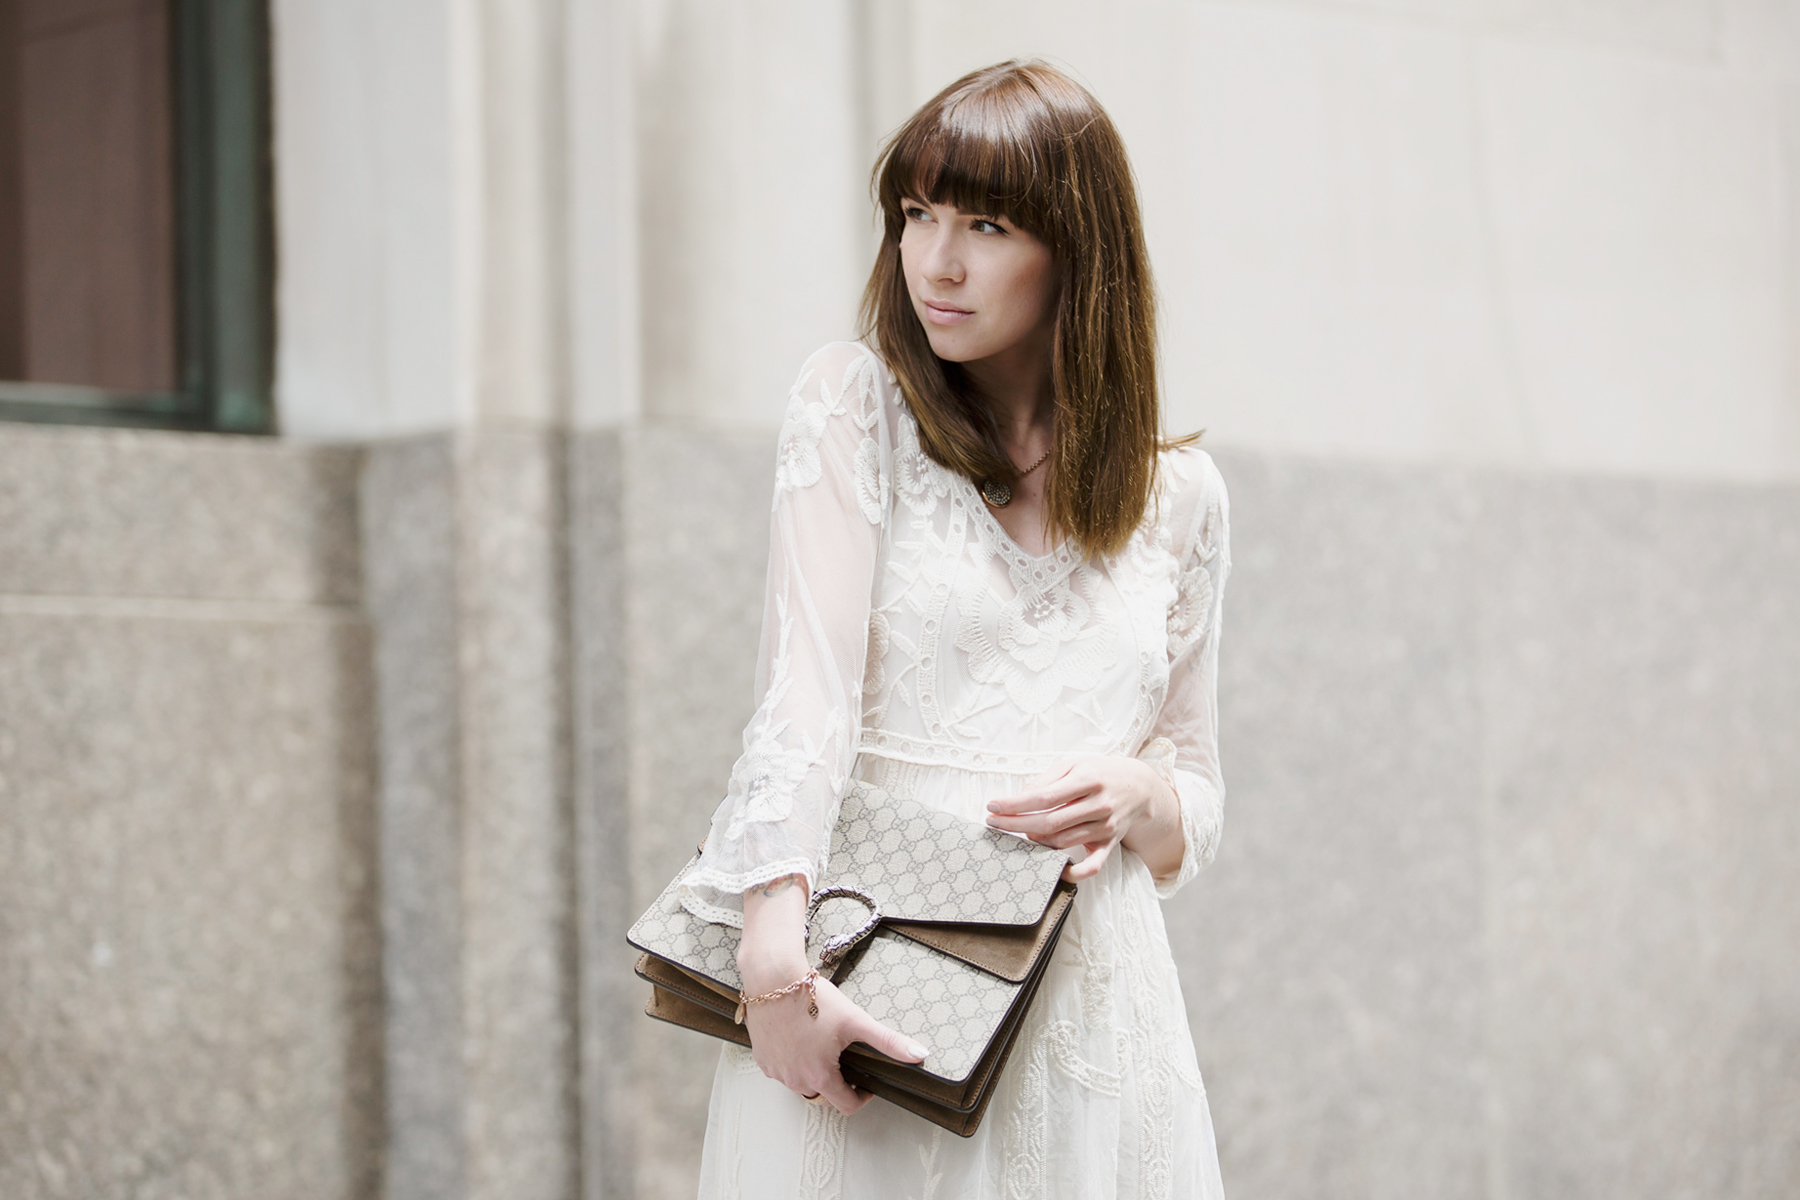 white dress edited the label editedgirls lace bride wedding style fashion fashionblogger new york style streetstyle look lookbook brunette bangs gucci dionysus sam edelman ootd ootn berlin blogger cats & dogs ricarda schernus 3